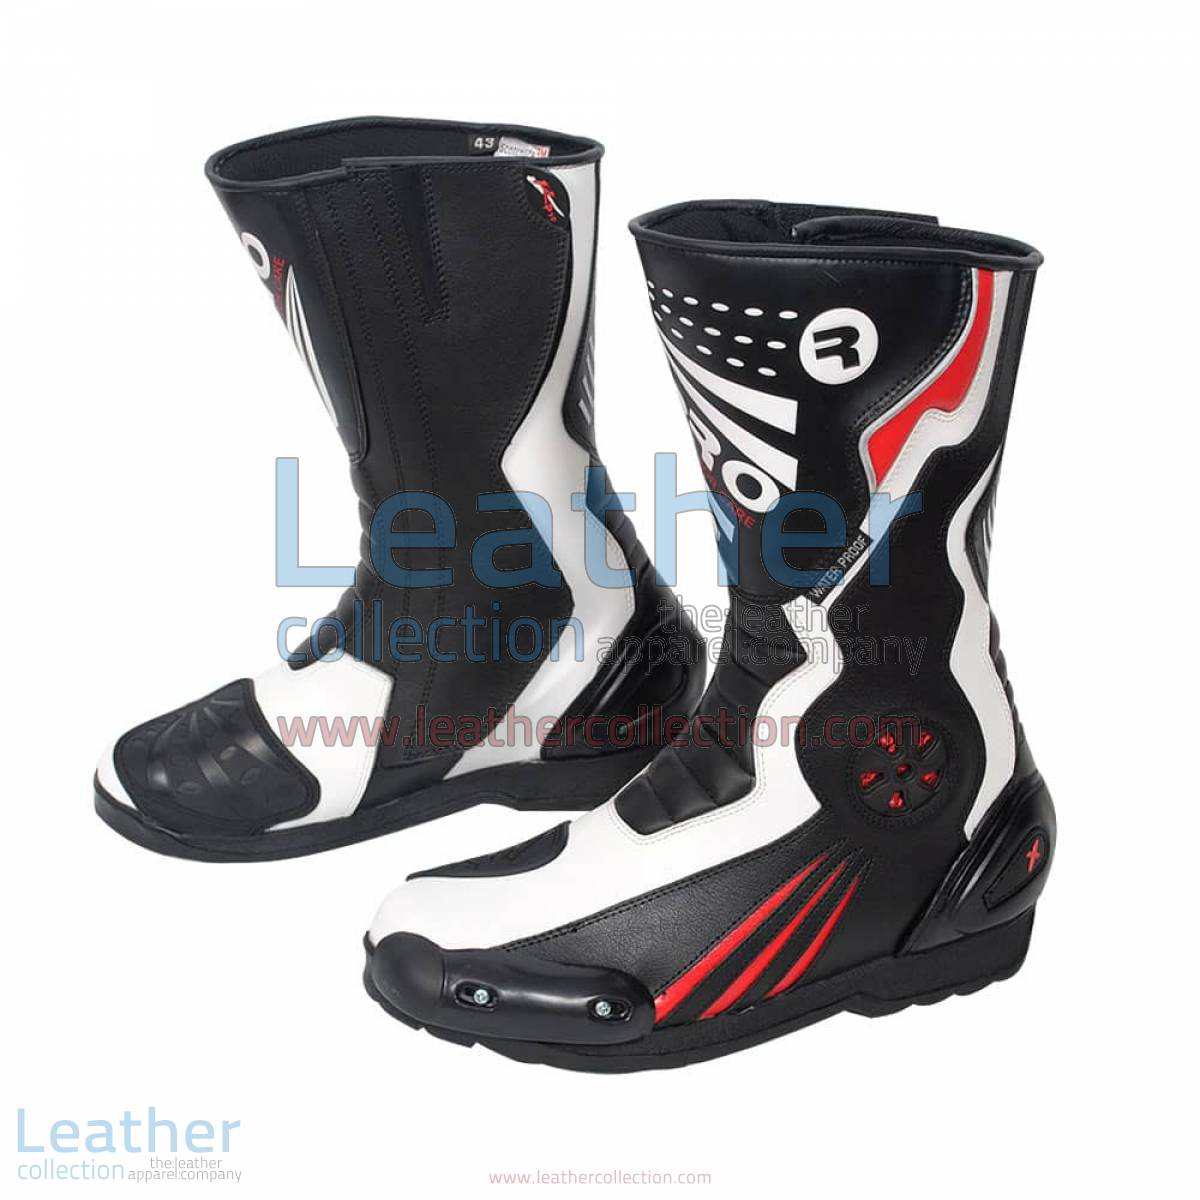 Scorpio Motorbike Riding Boots | motorcycle riding boots